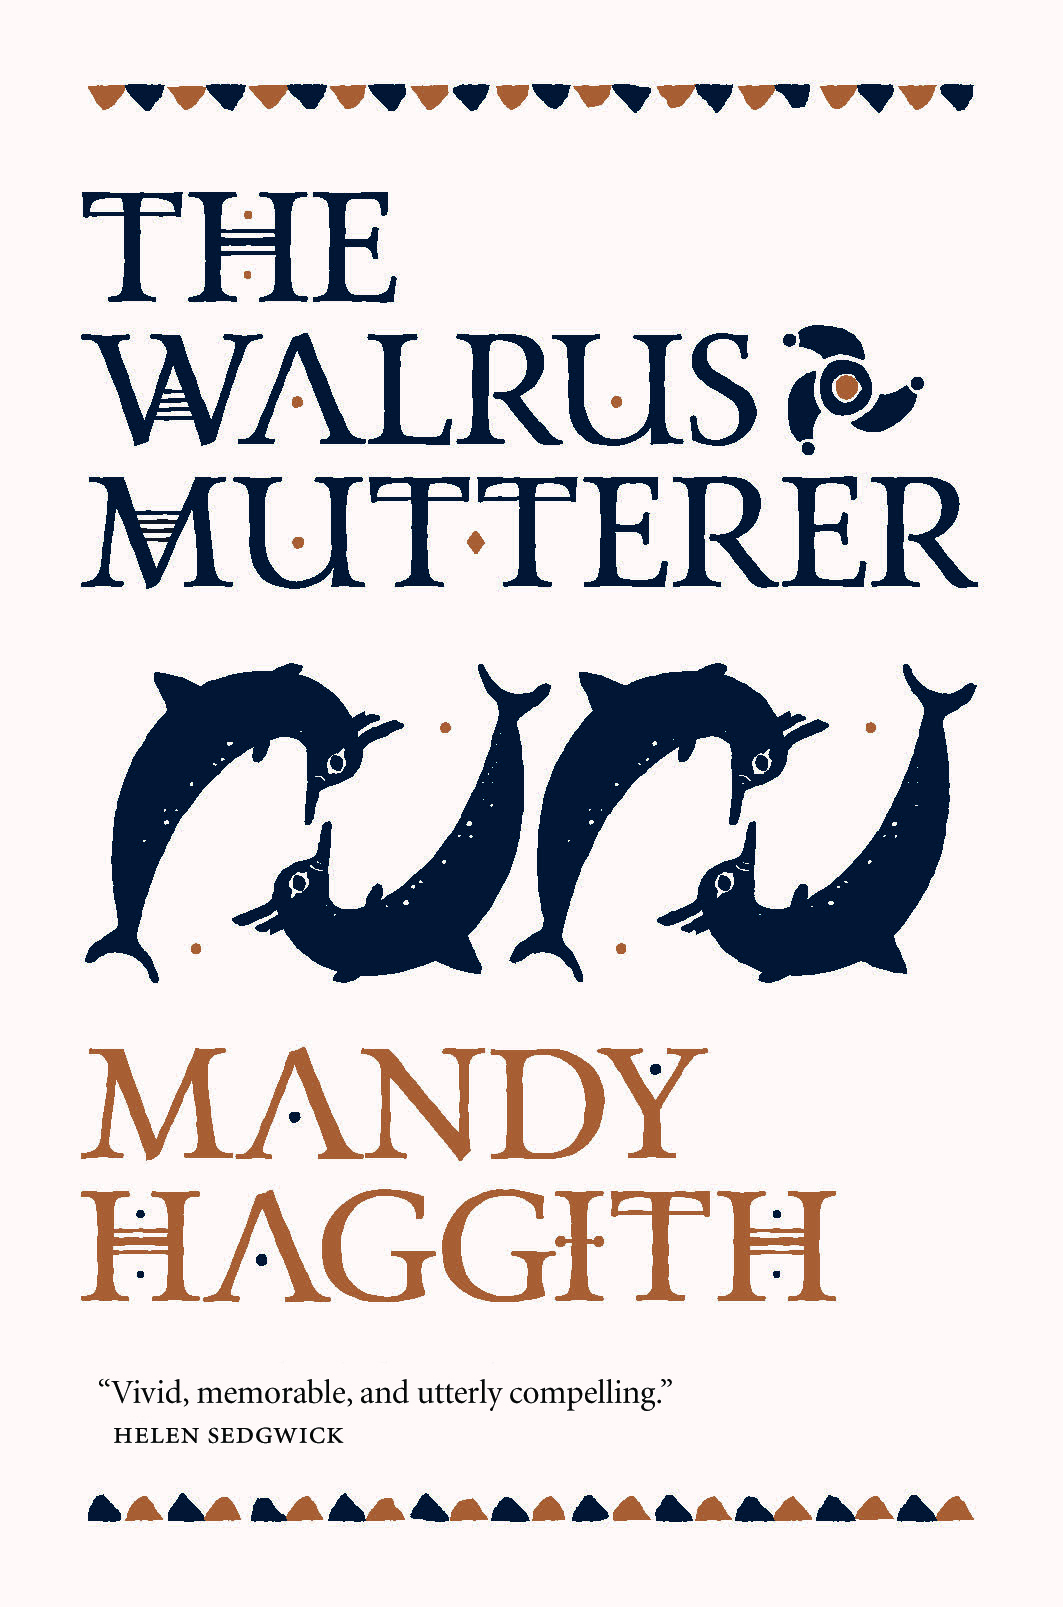 Image of Mandy Haggith – The Walrus Mutterer